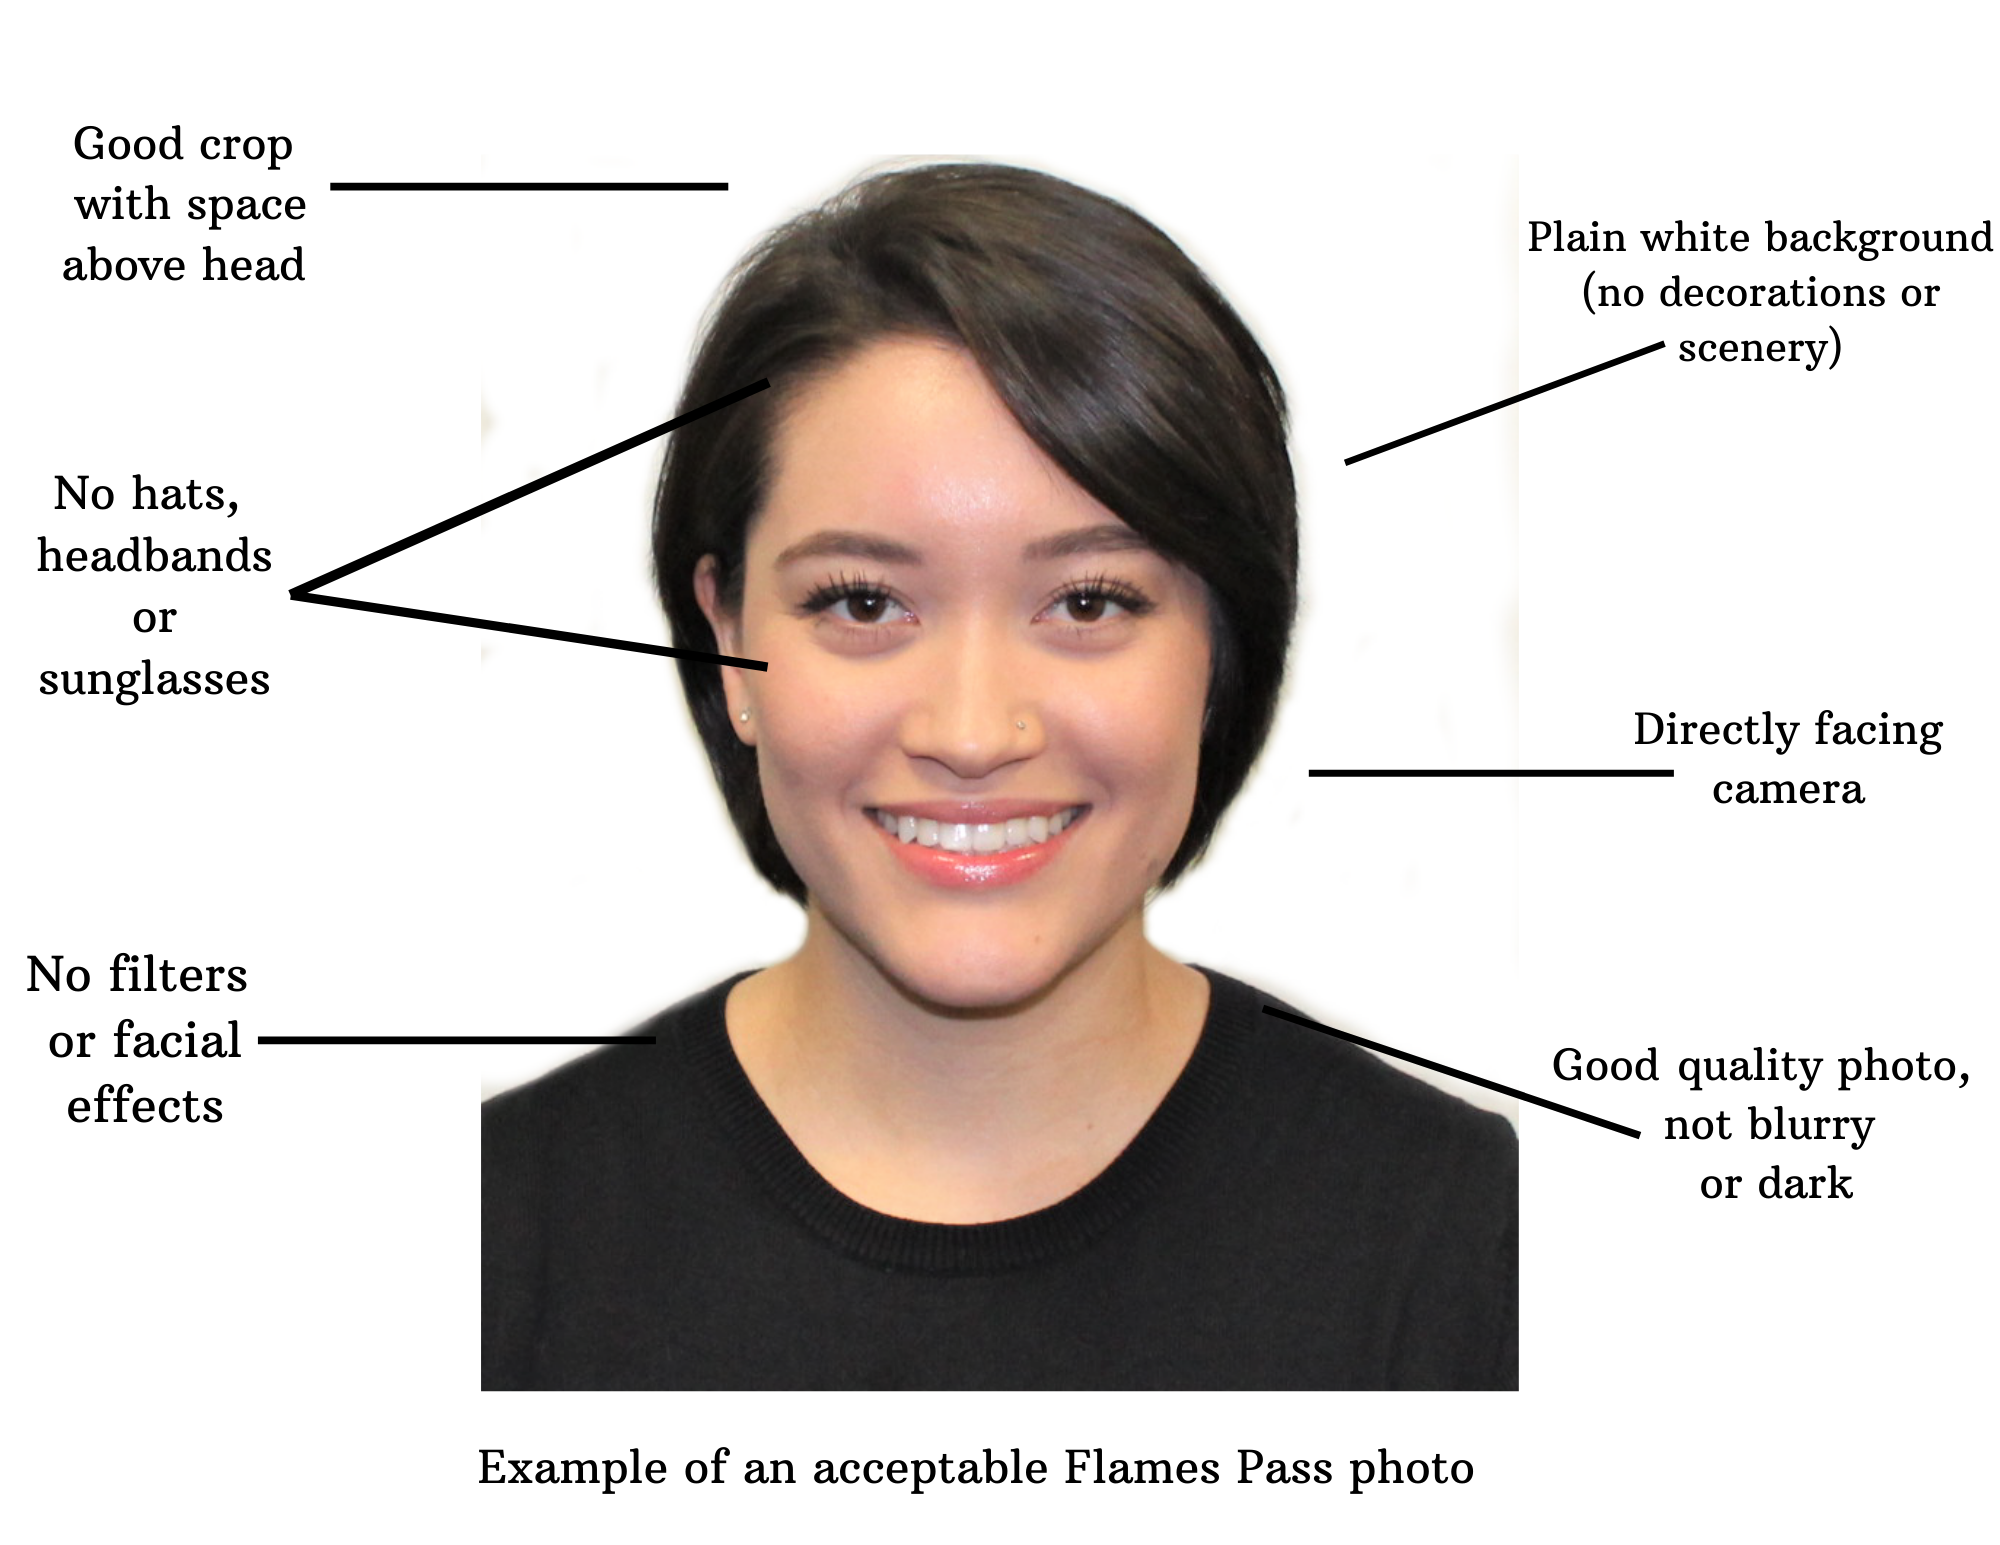 example image showing correct characteristics of a good image